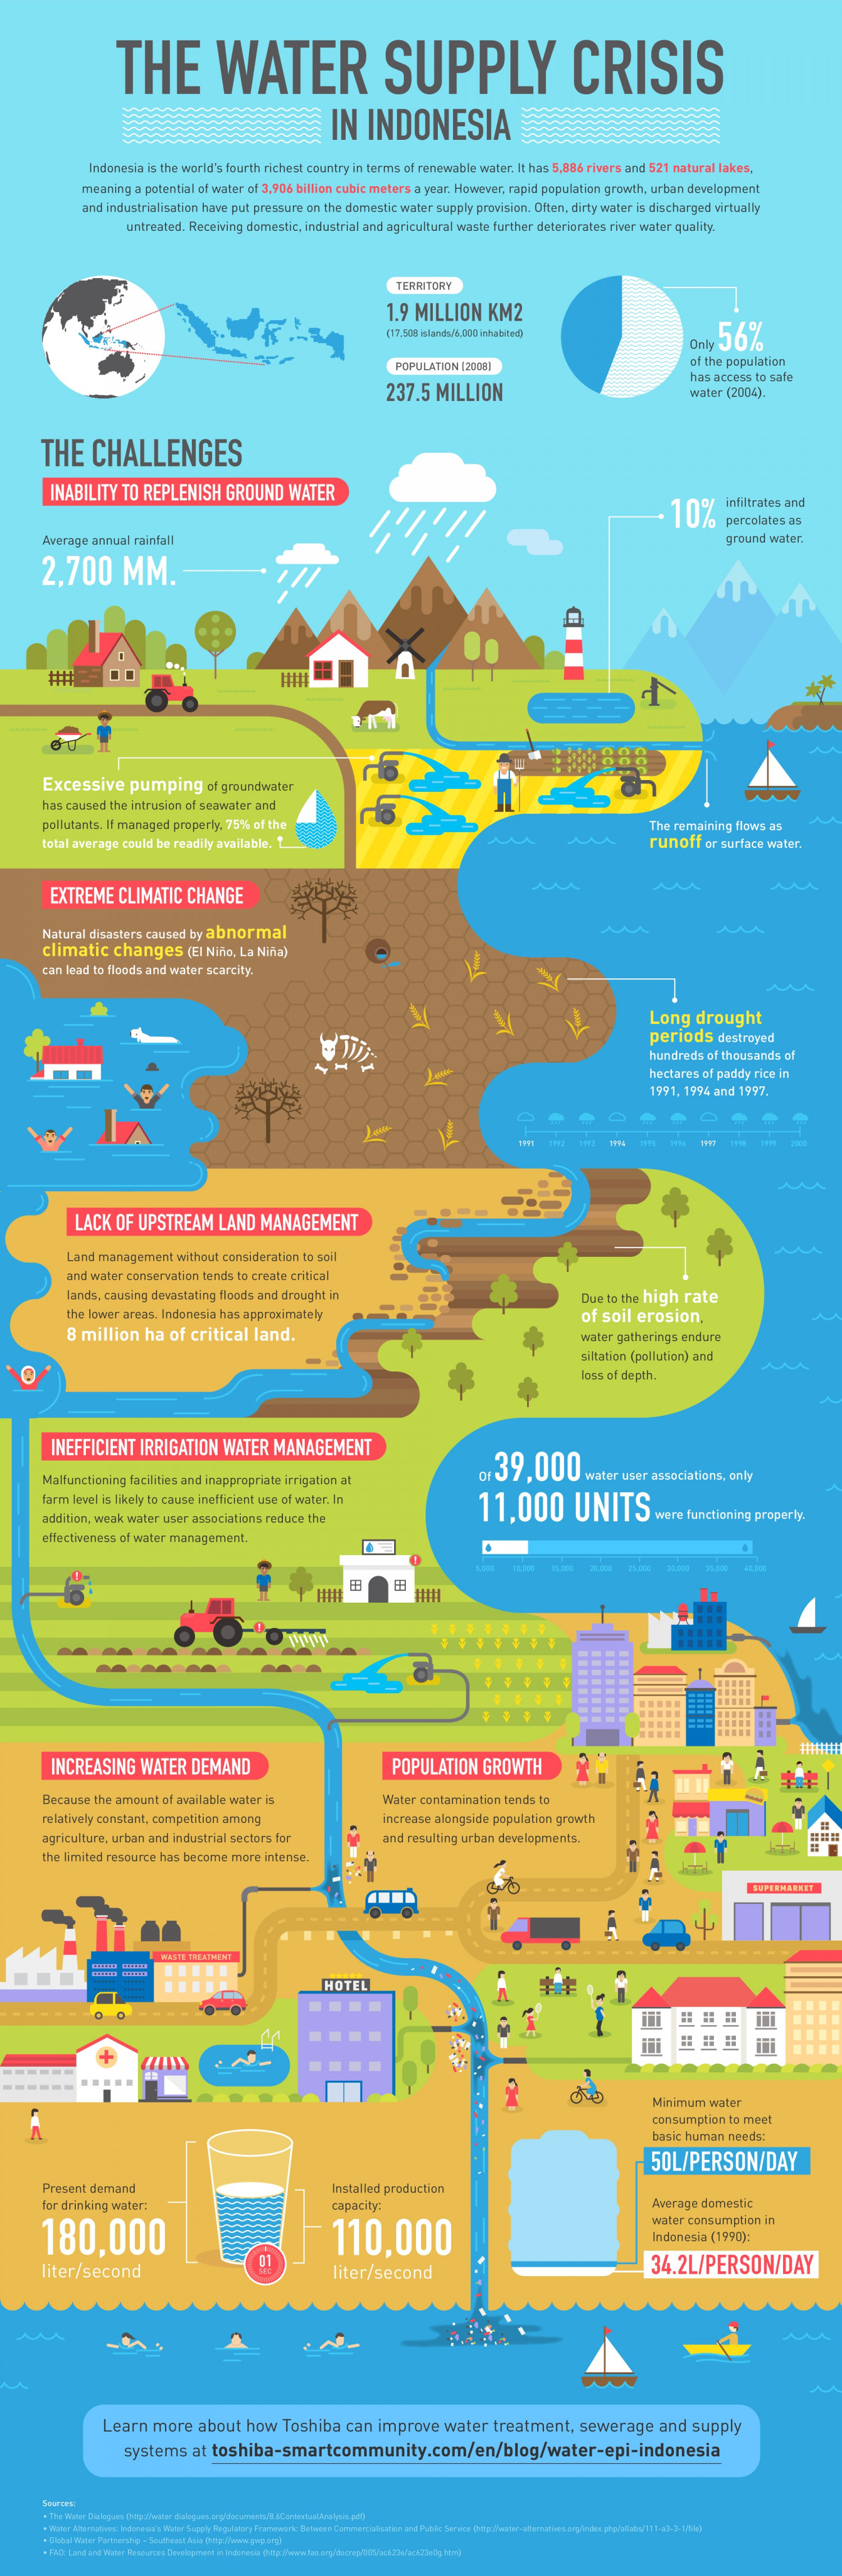 THE WATER SUPPLY CRISIS IN INDONESIA Infographic